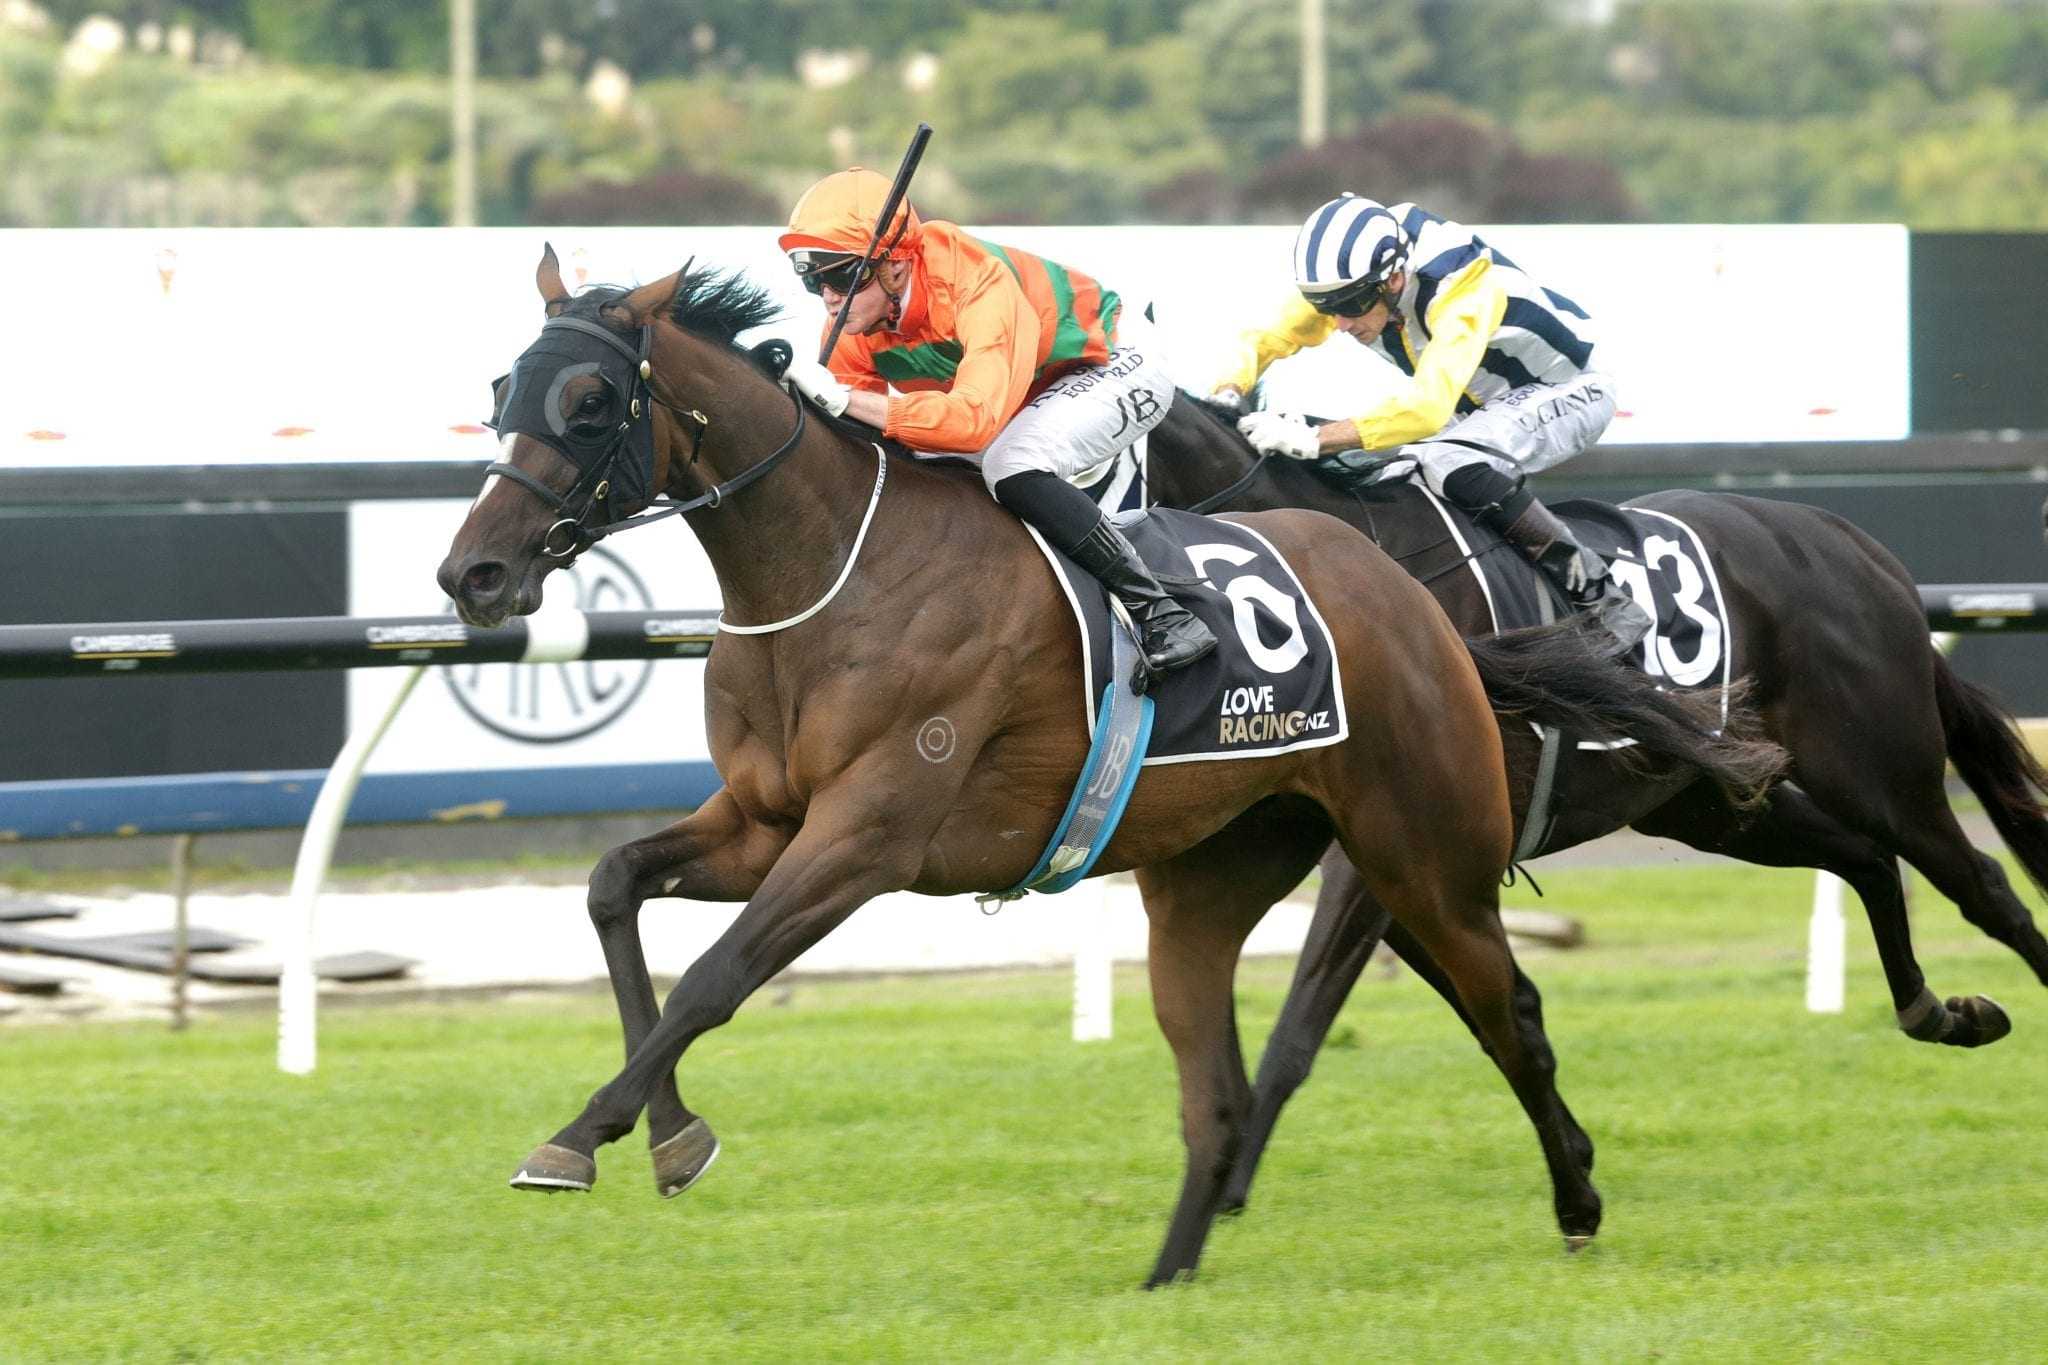 50336a1be58 Group One Queensland Derby prospect Lord Arthur wins the Gr.2 Championship  Stakes at Ellerslie last month Photo Credit: Trish Dunell